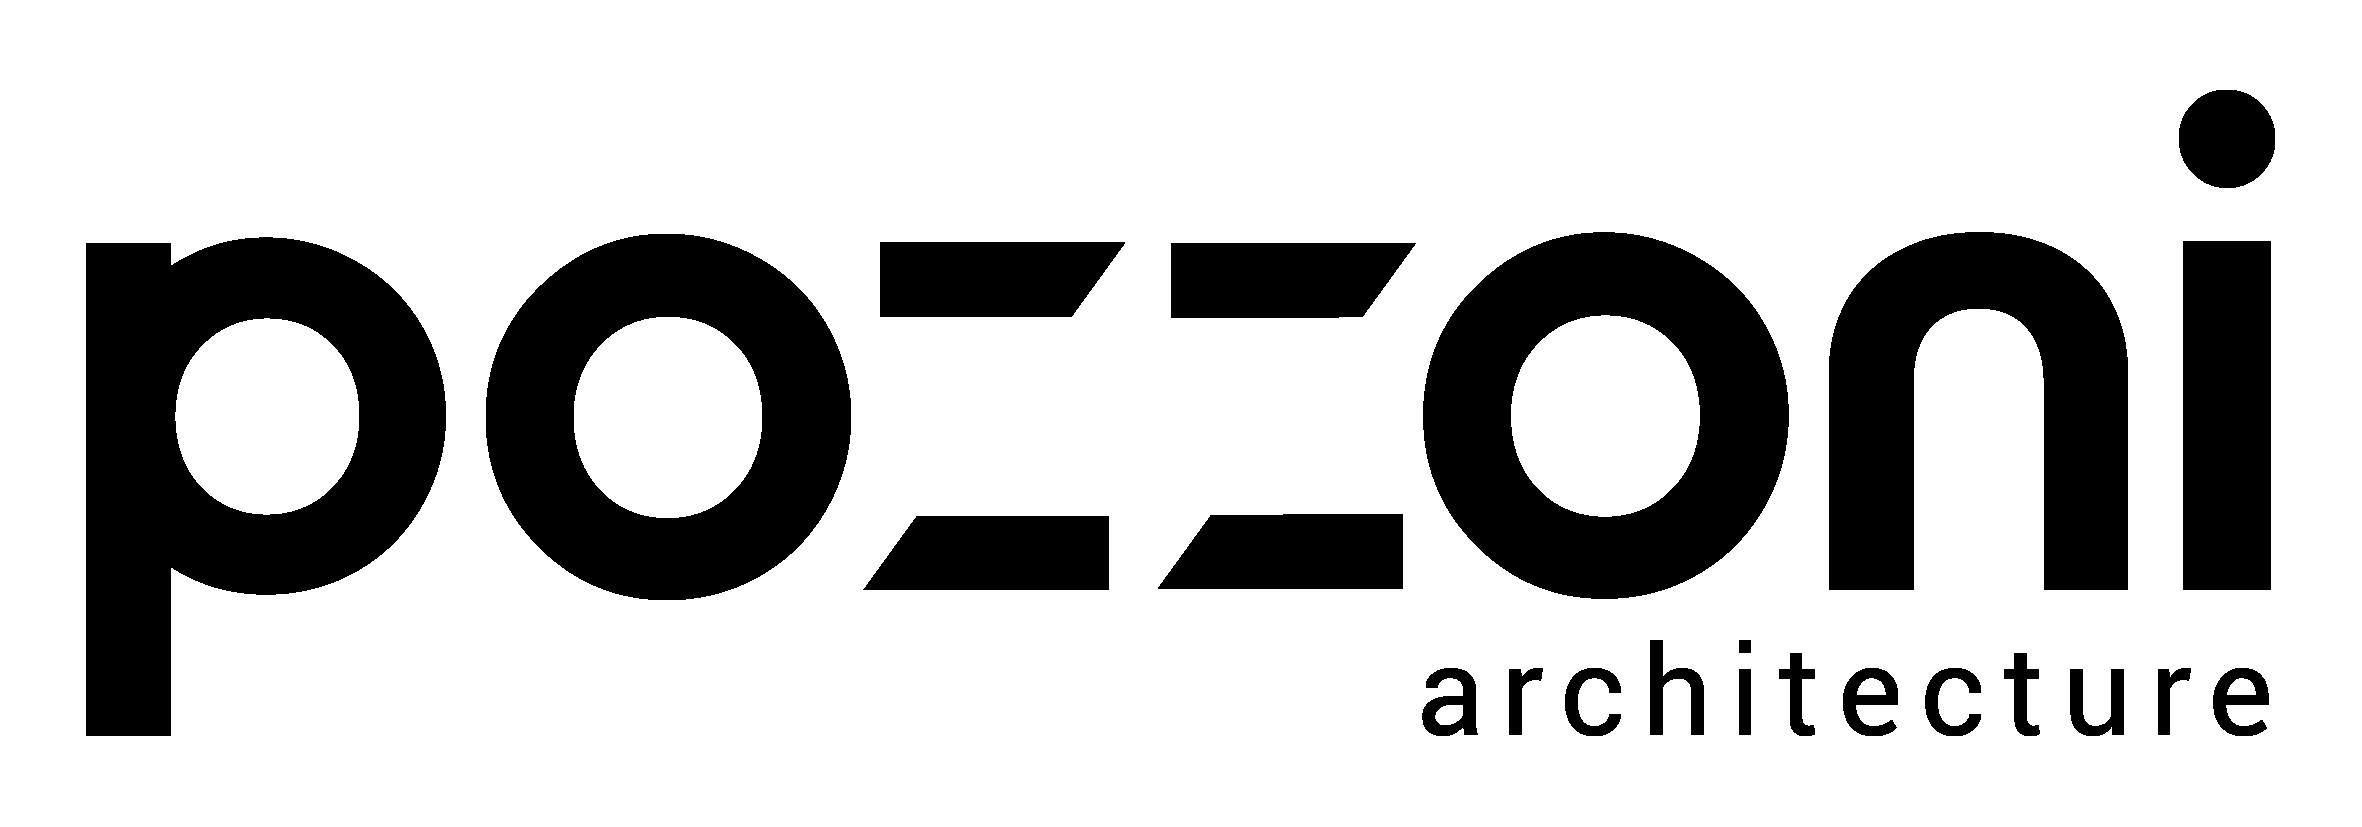 Pozzoni Architecture Ltd Logo